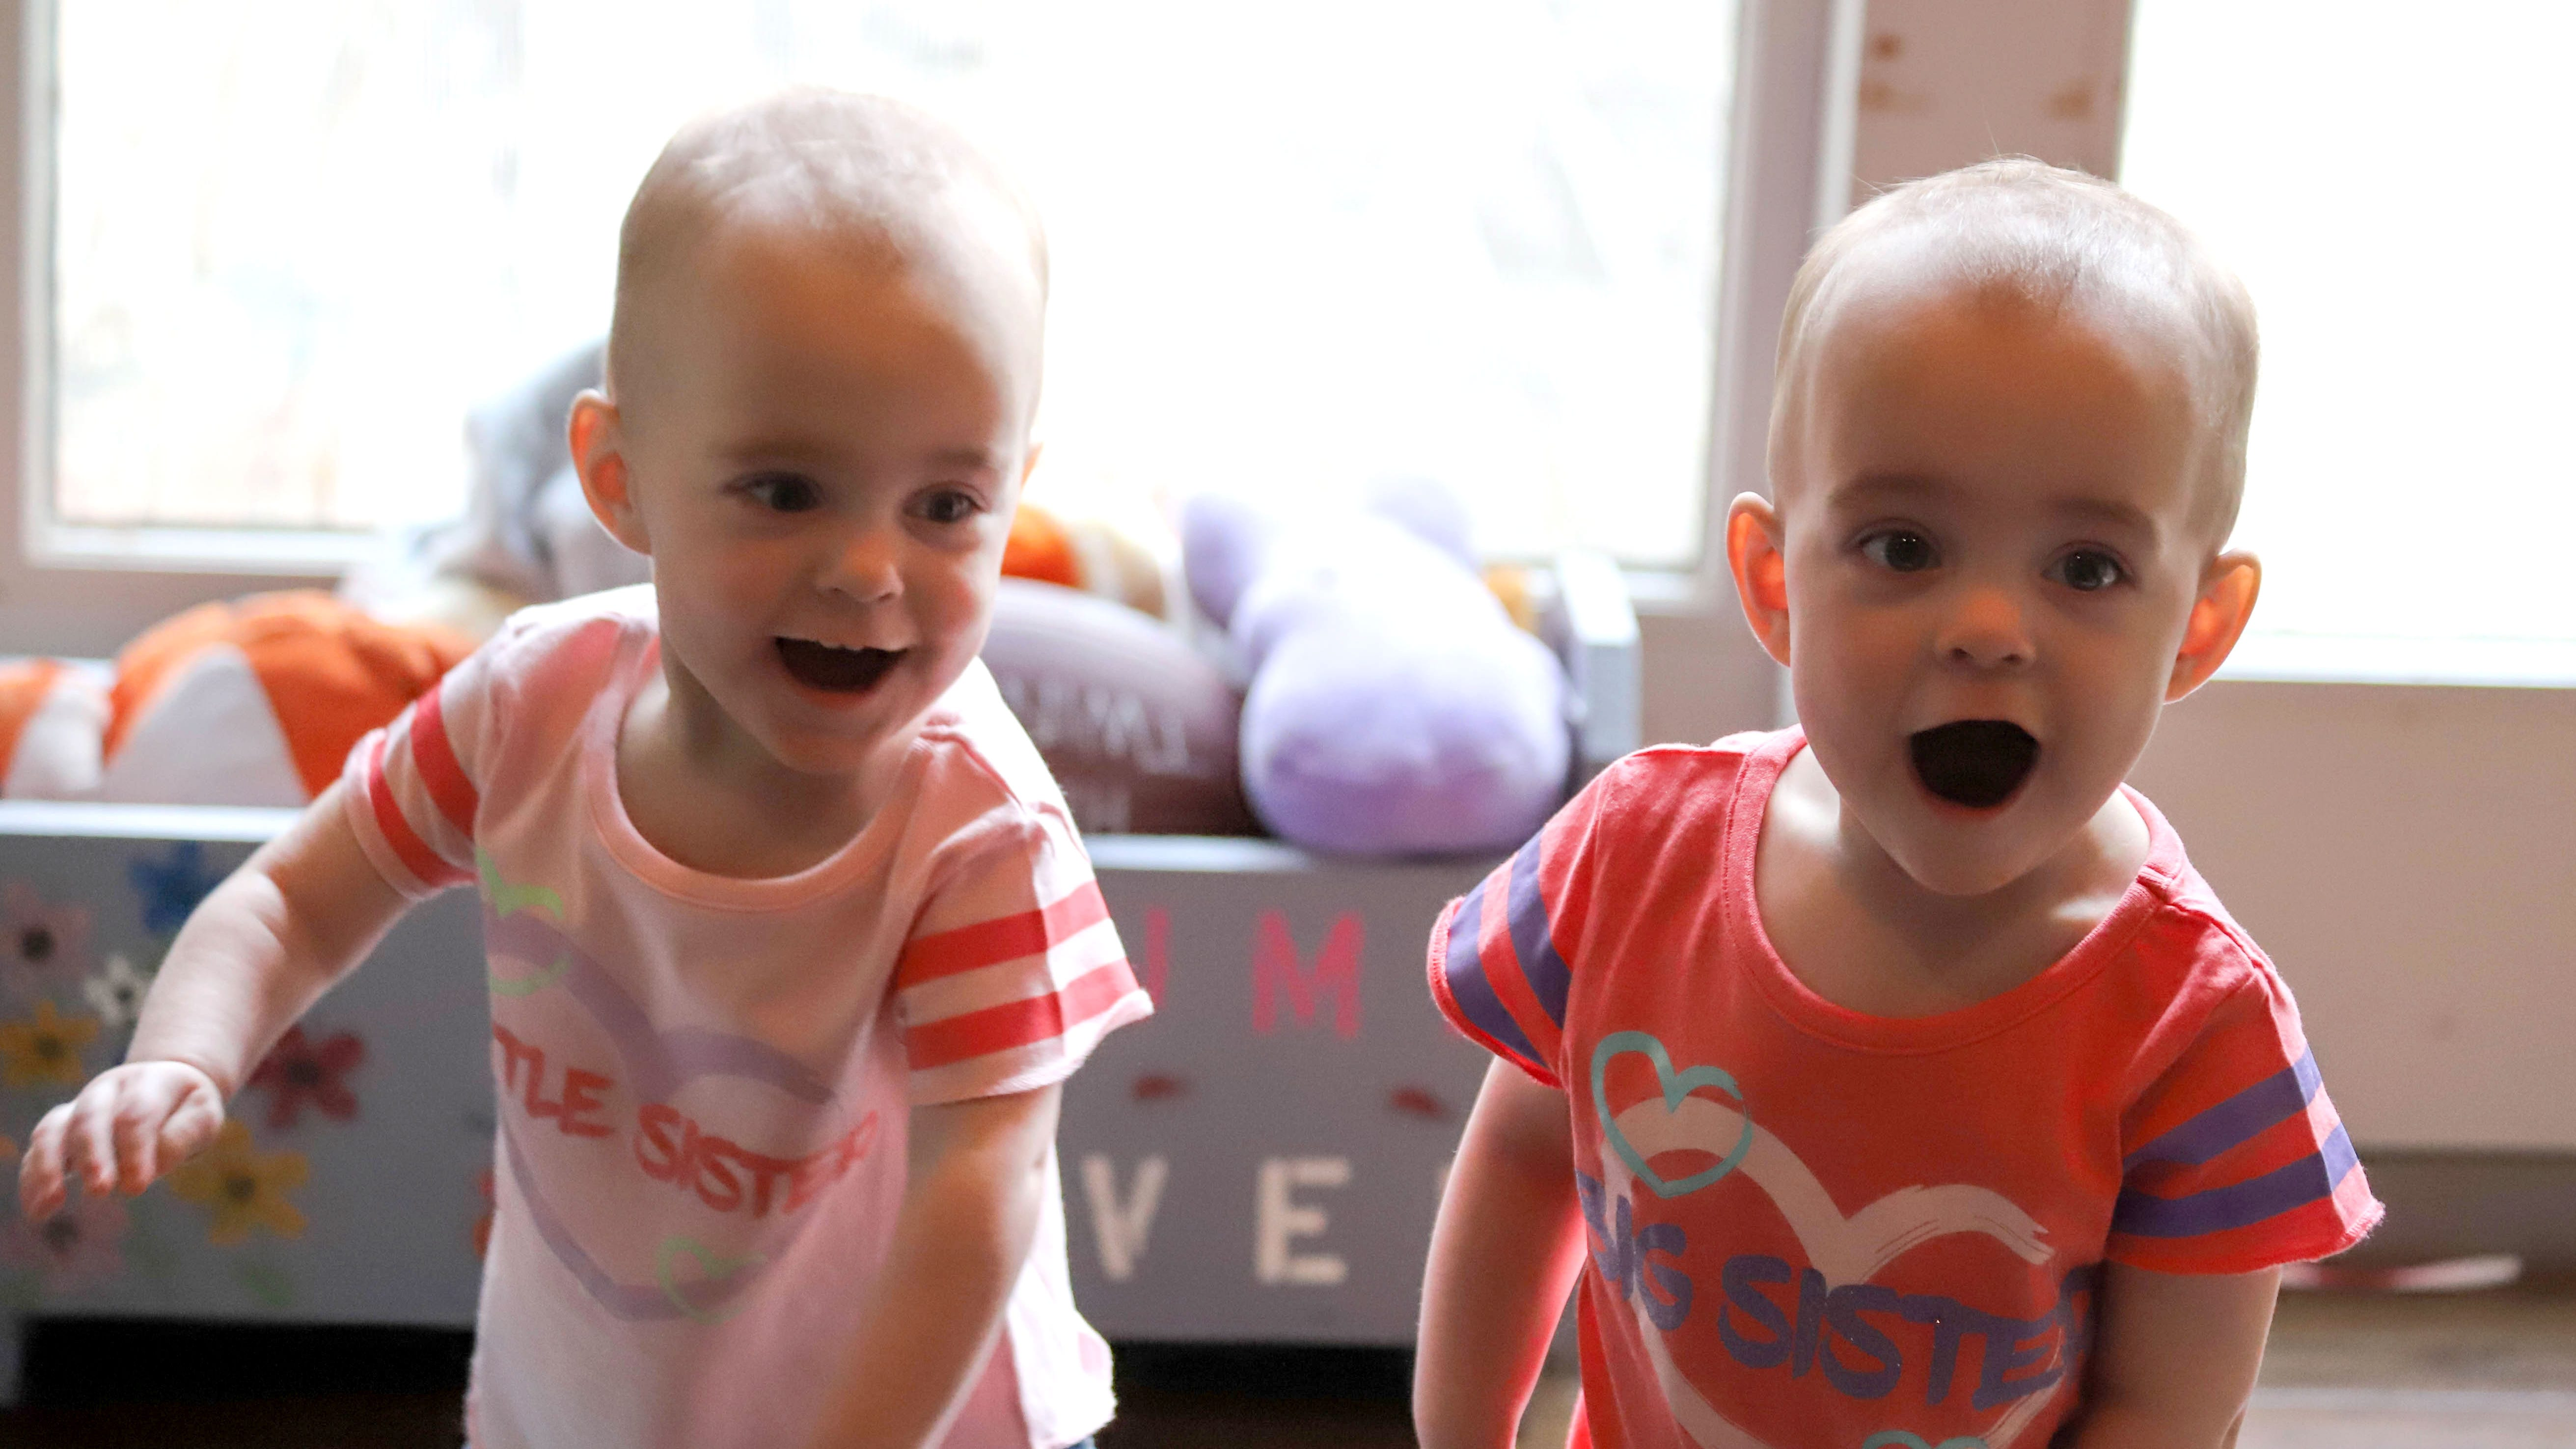 'It takes a village': Board of DD helped local twins grow